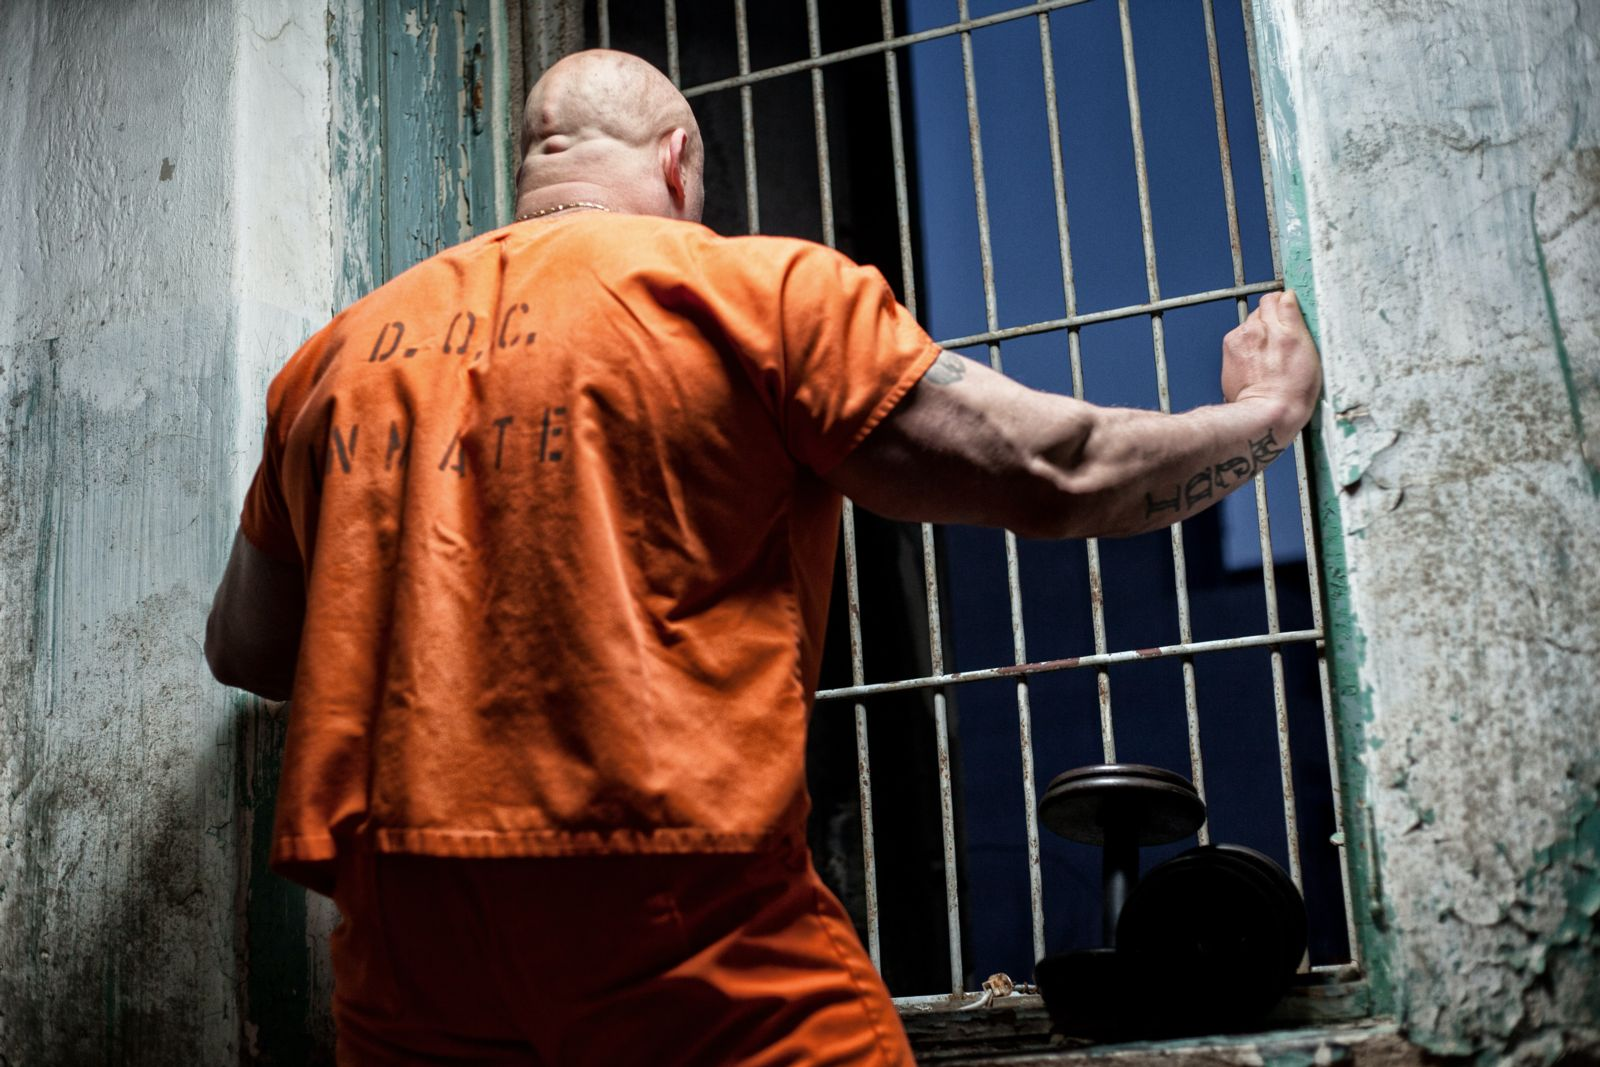 A prison inmate stands at a barred window in a jail cell. During the coronavirus pandemic, an attorney may be able to help you protect your loved ones from COVID19 with a compassionate release